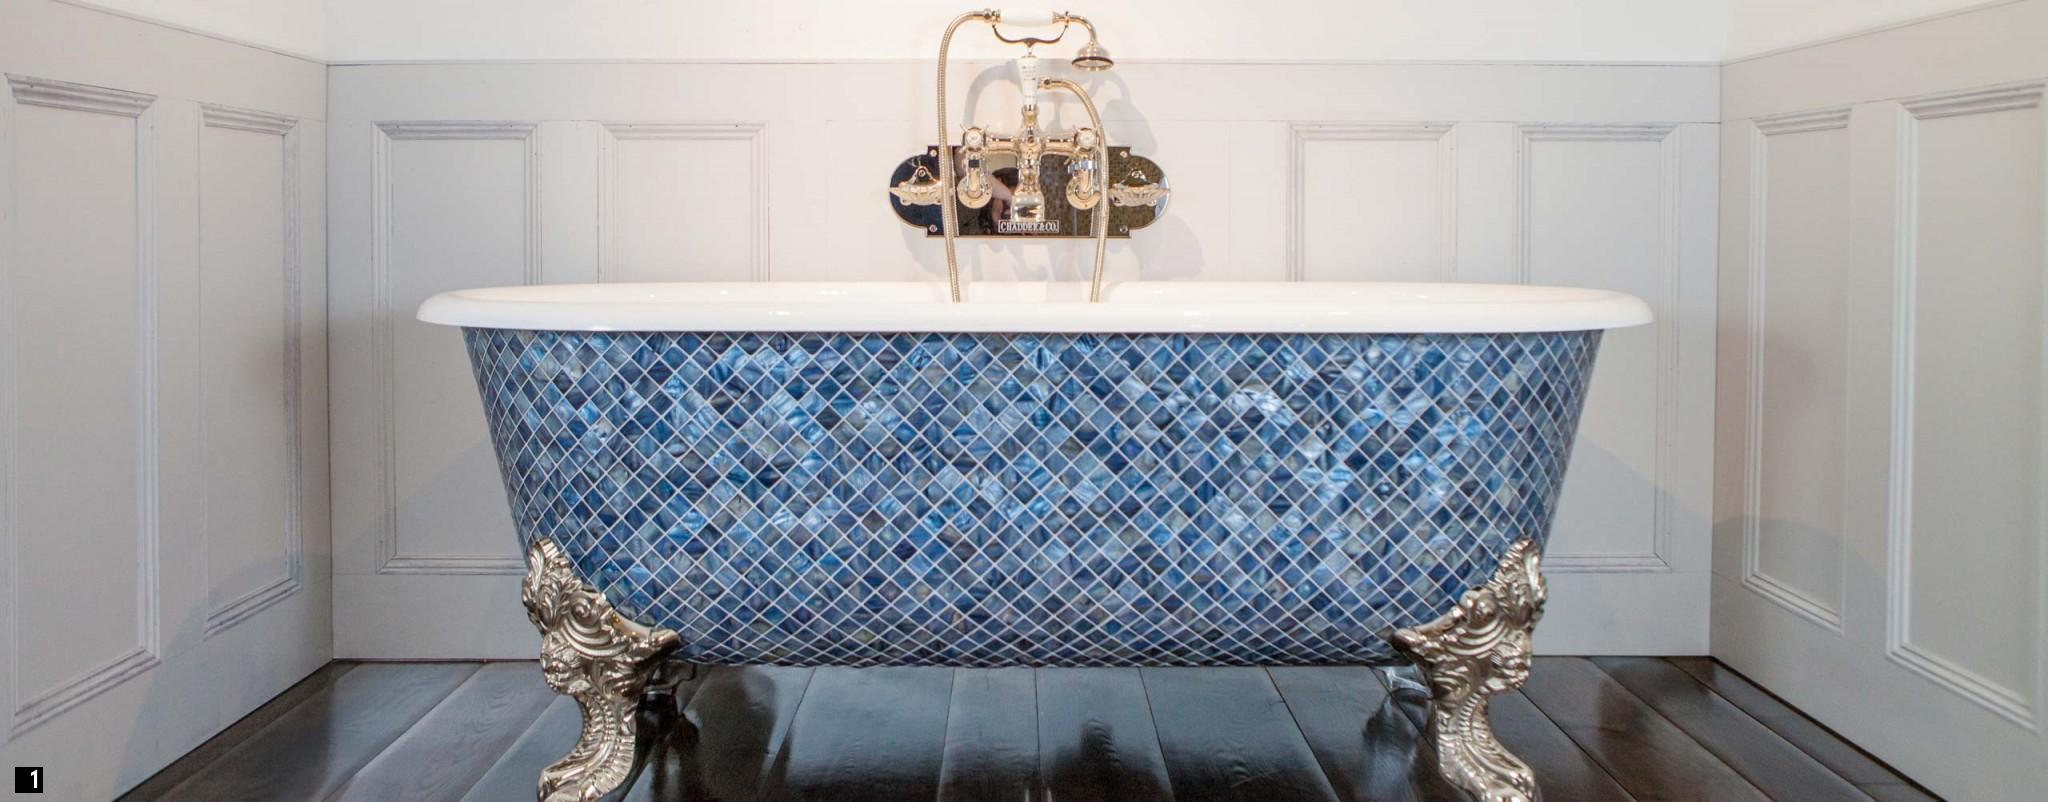 chadder luxury custom mosaic bath in blue